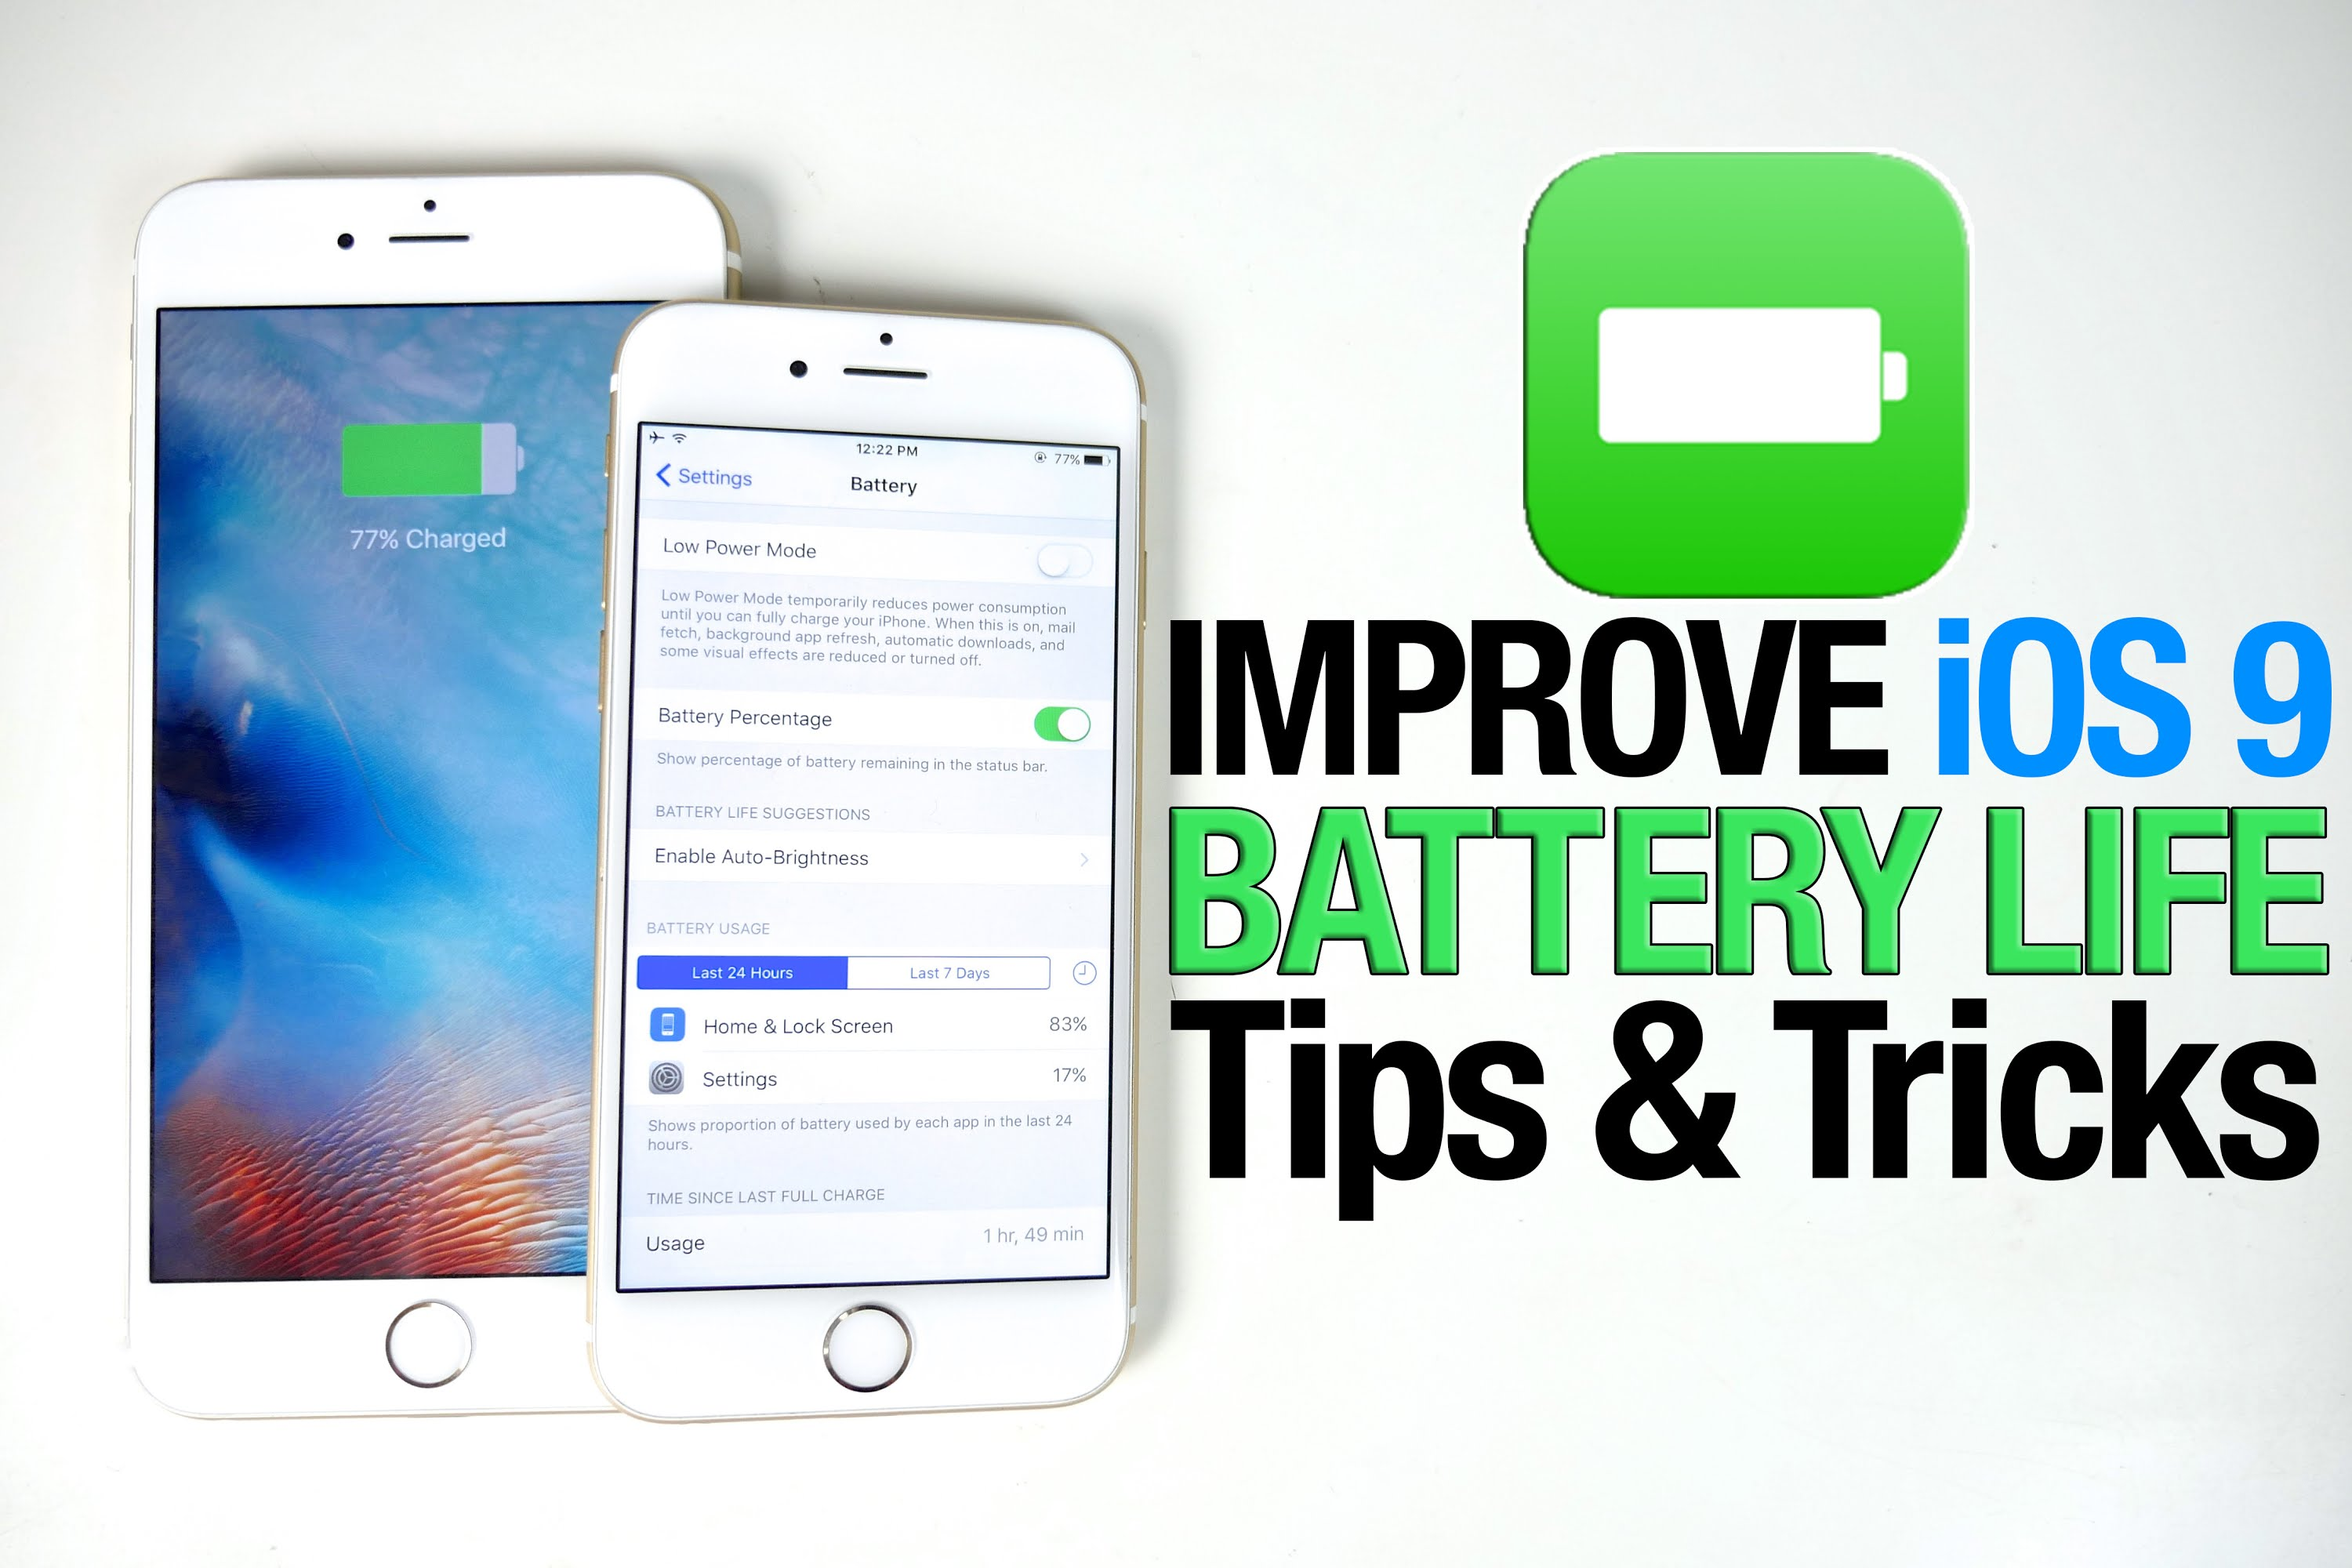 How to Make iPhone 6 Battery Life Last Longer